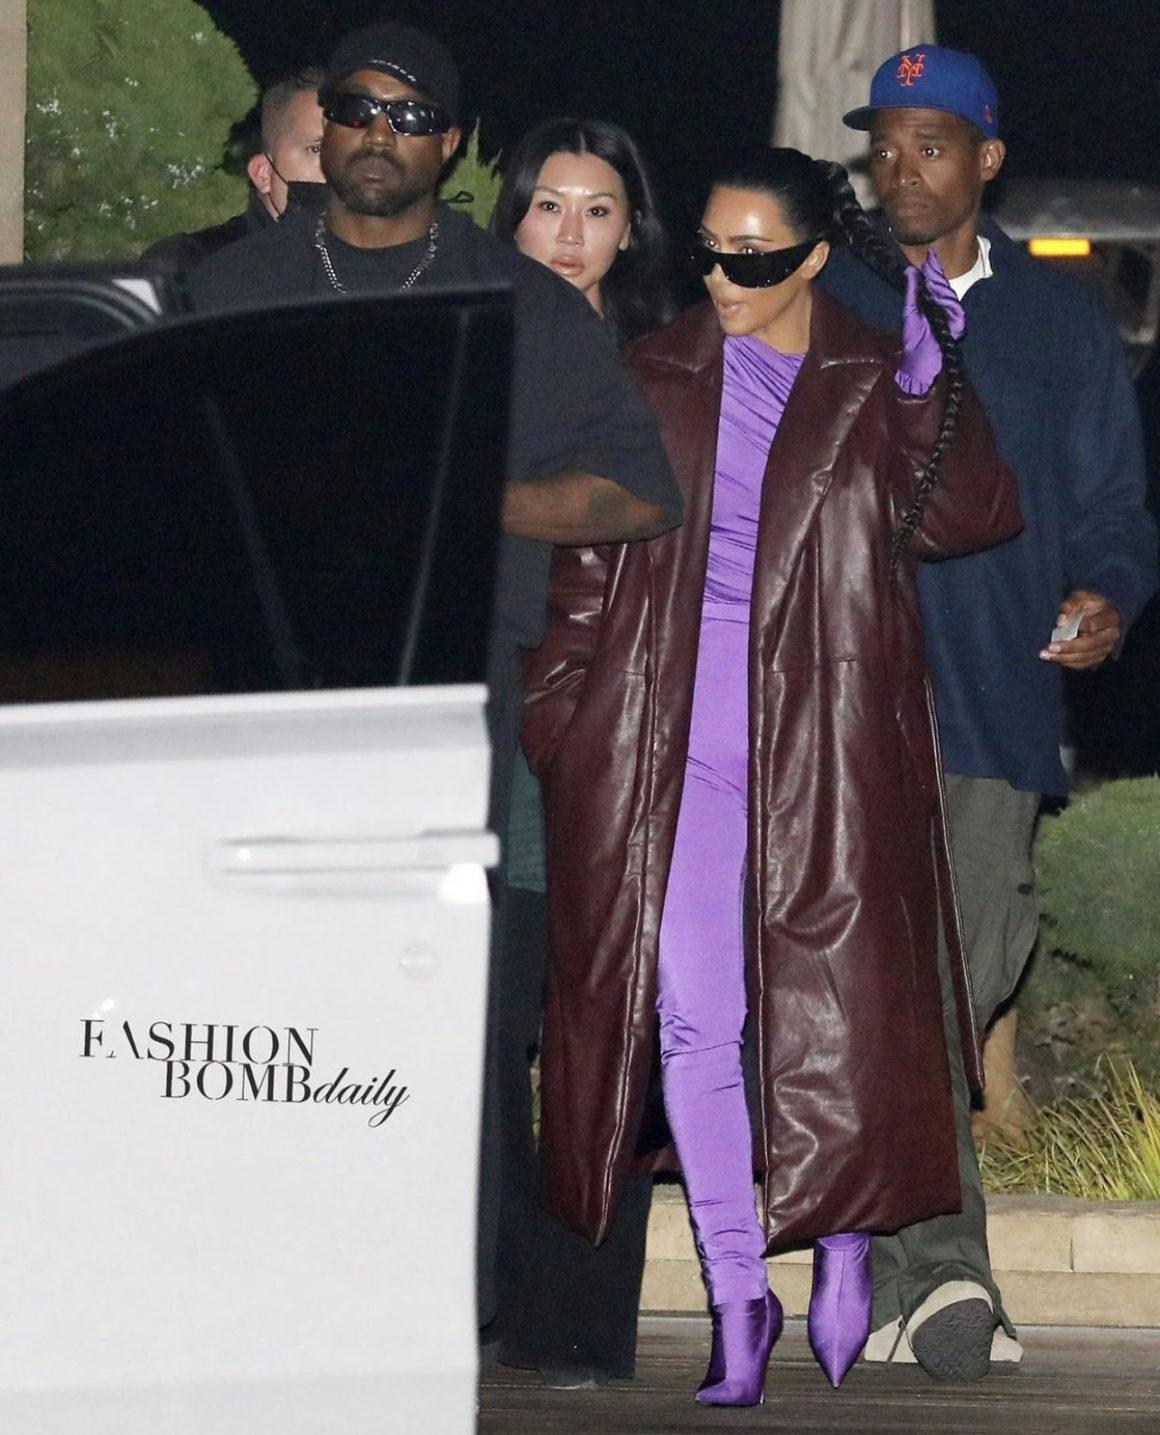 Kim Kardashian Steps Out in Head-To-Toe Balenciaga While Having Dinner With Kanye West in Malibu